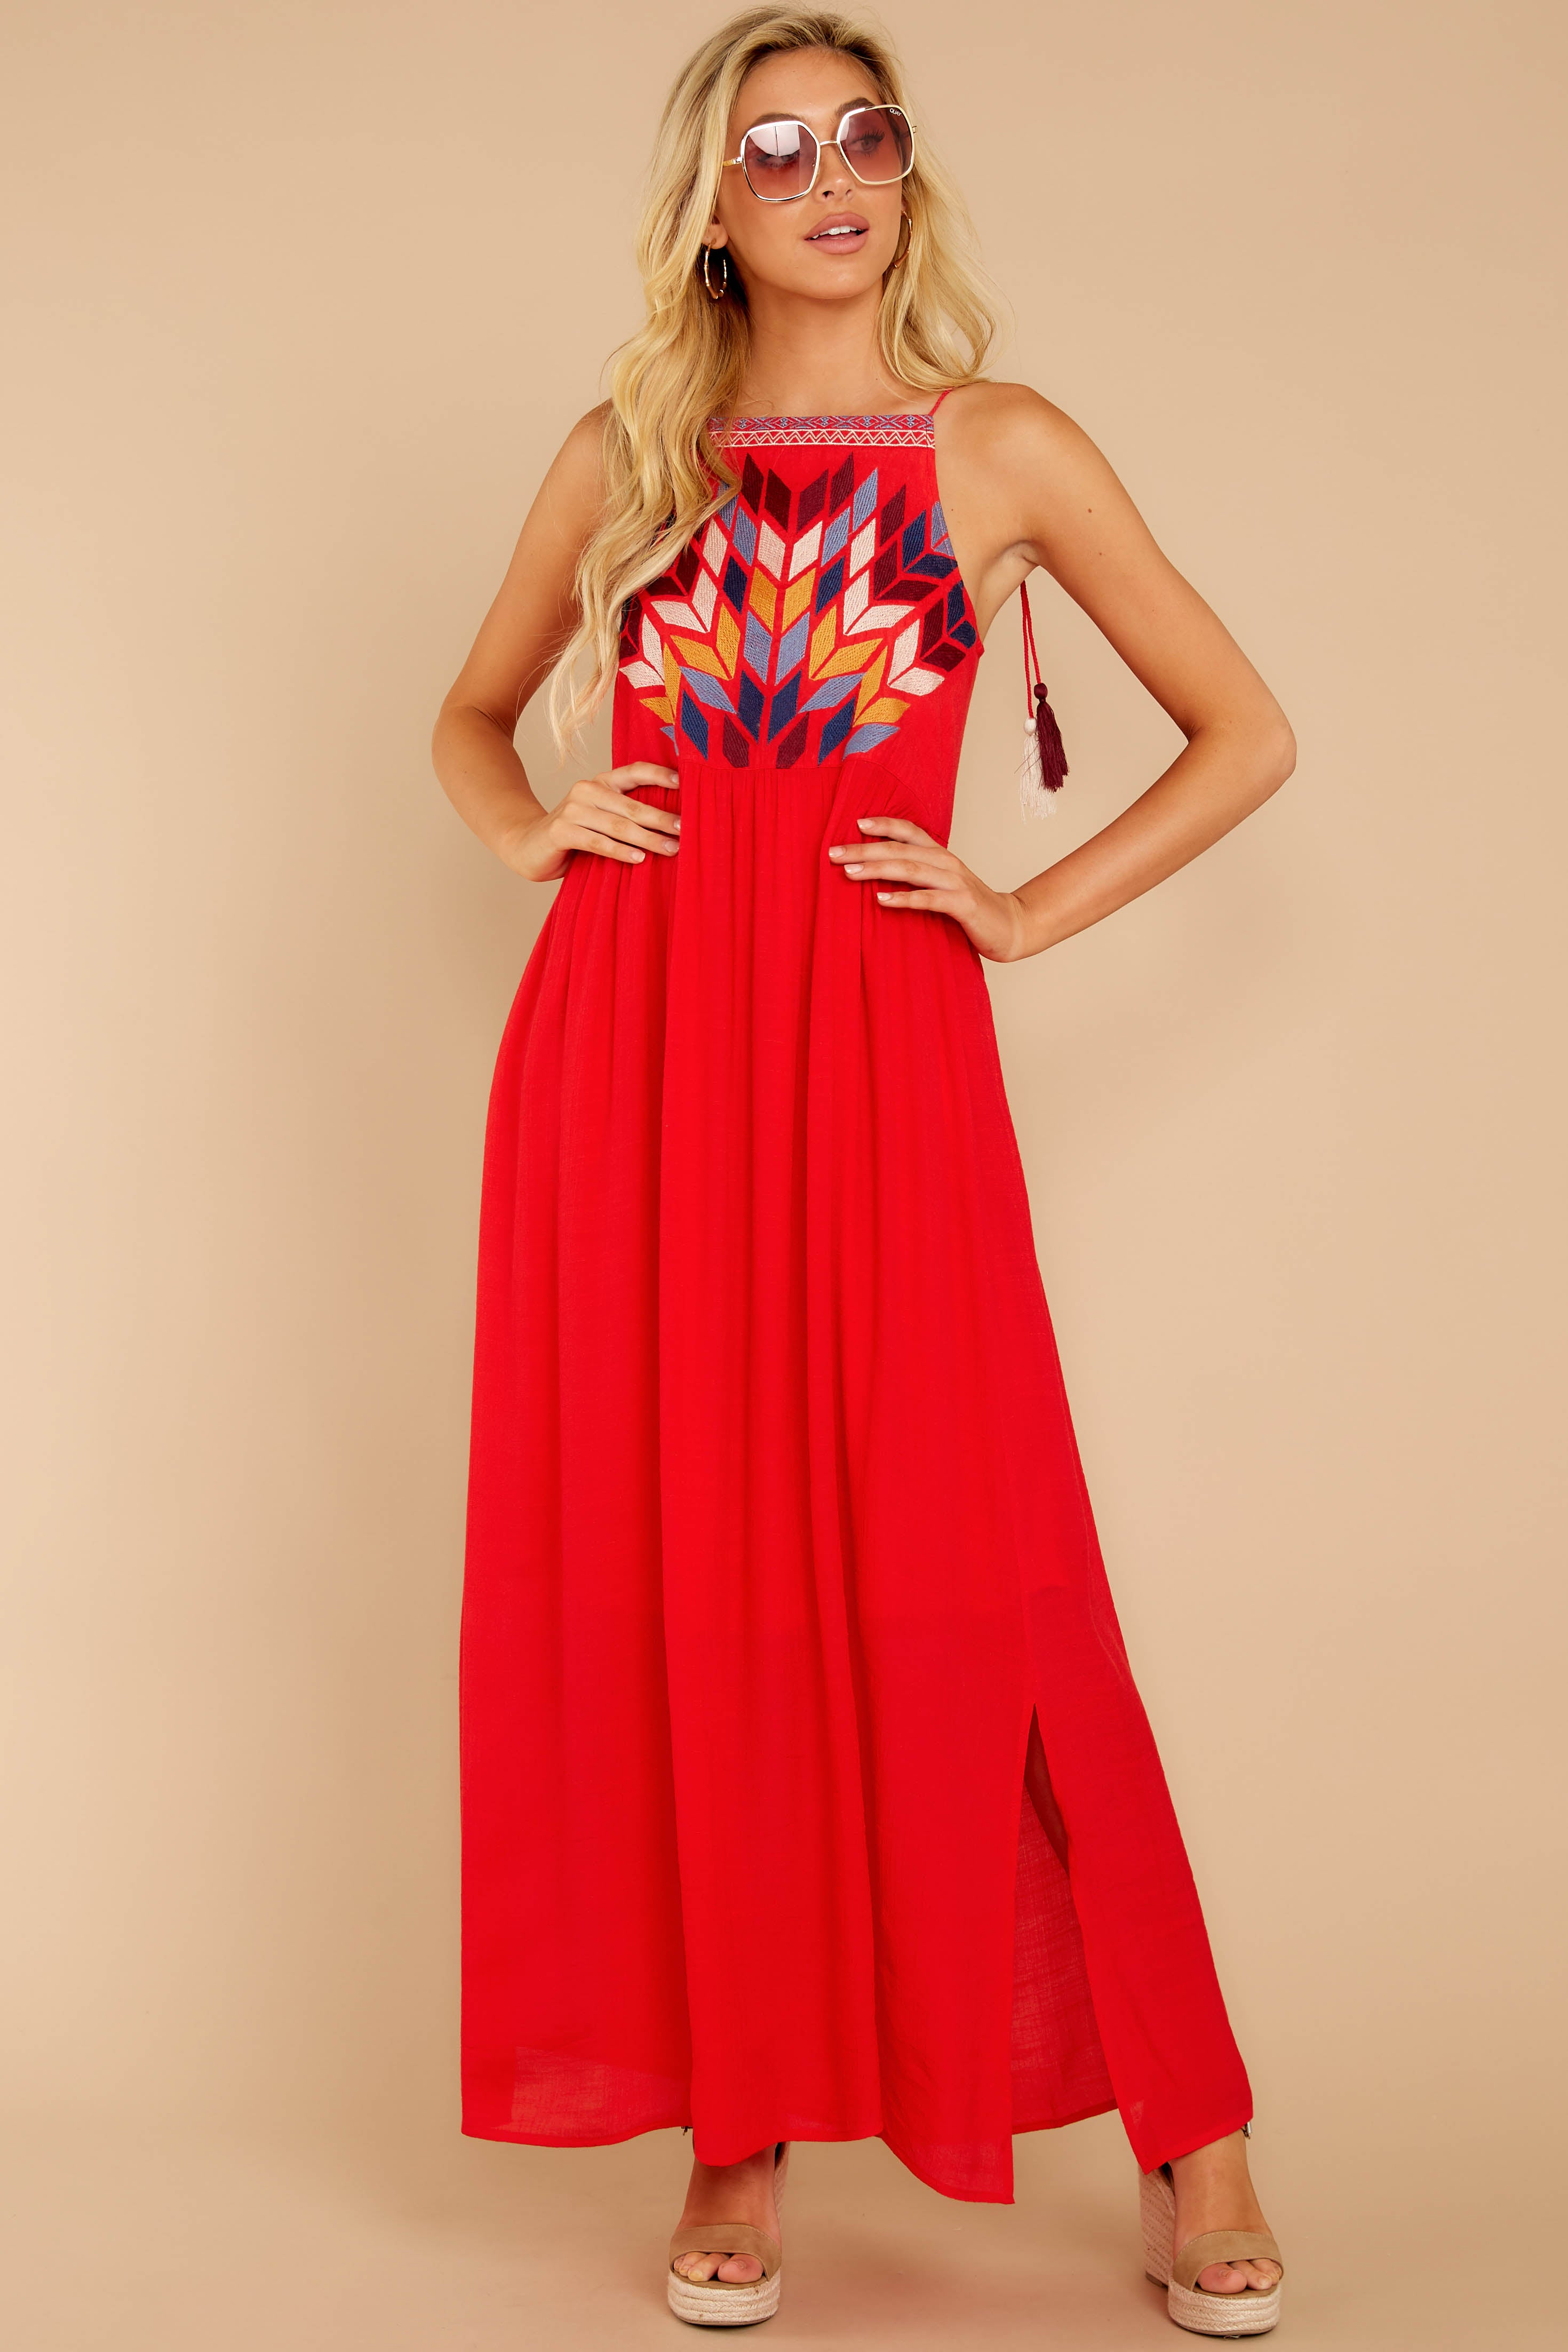 4 Kaleidoscope View Red Embroidered Maxi Dress at reddressboutique.com